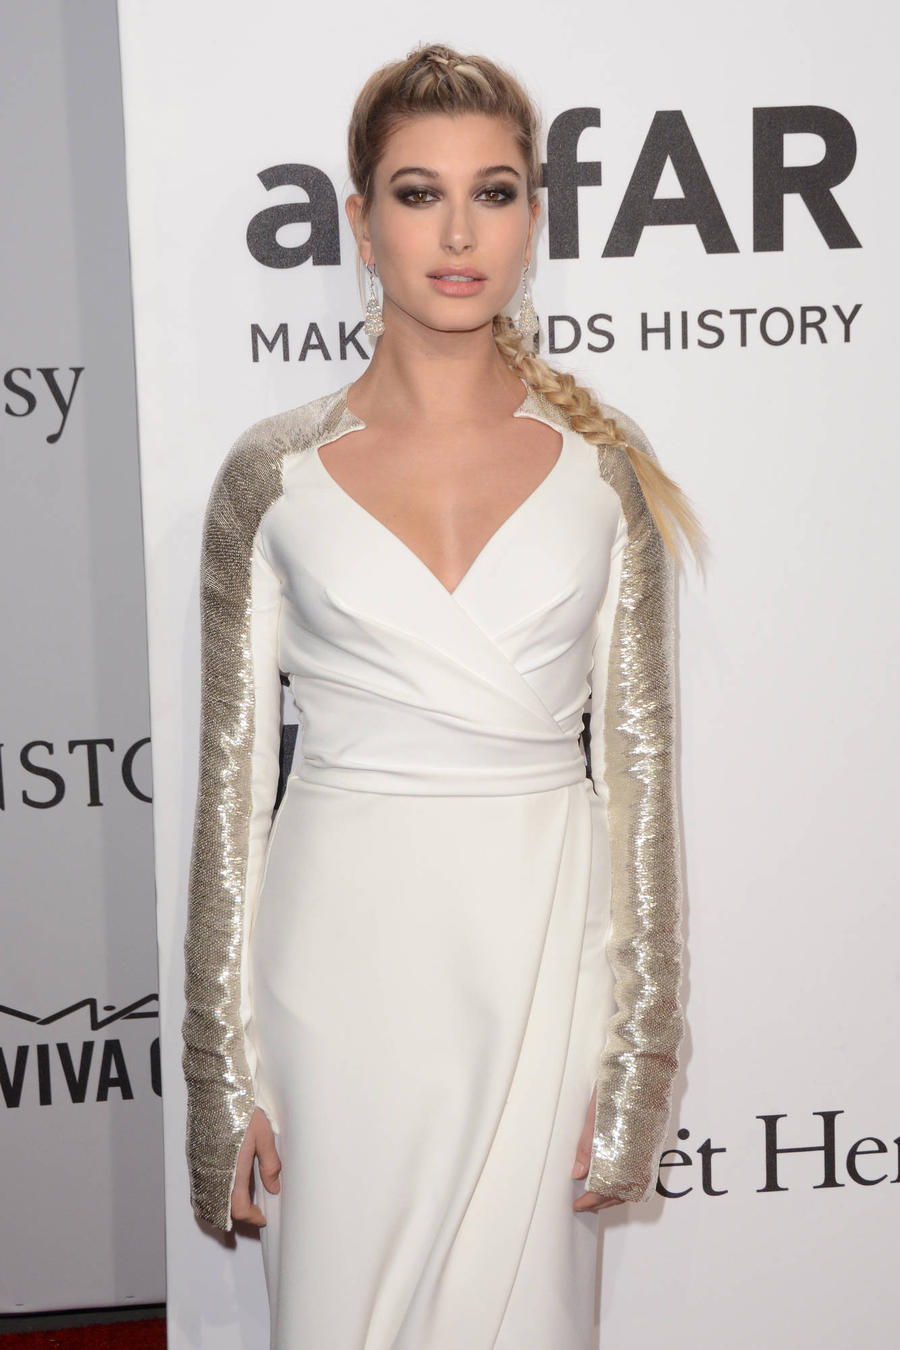 Hailey Baldwin Breaks Her Foot After Met Ball - Again